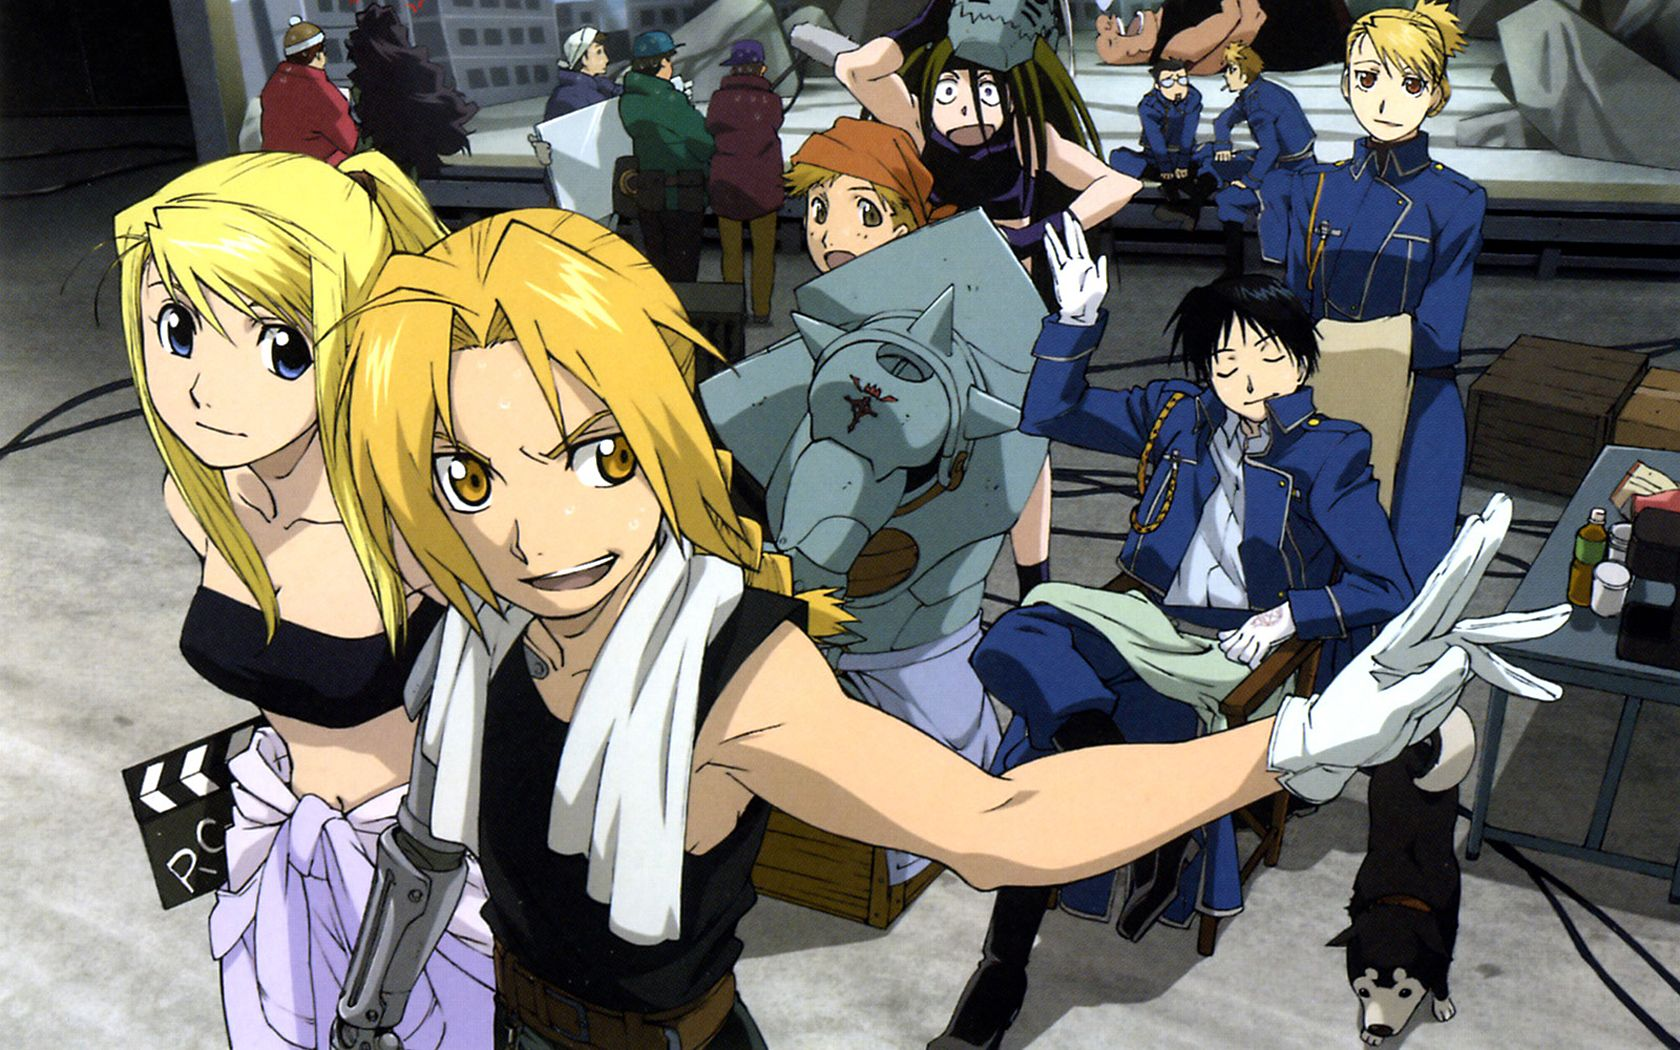 Скачать игру fullmetal alchemist brotherhood на компьютер